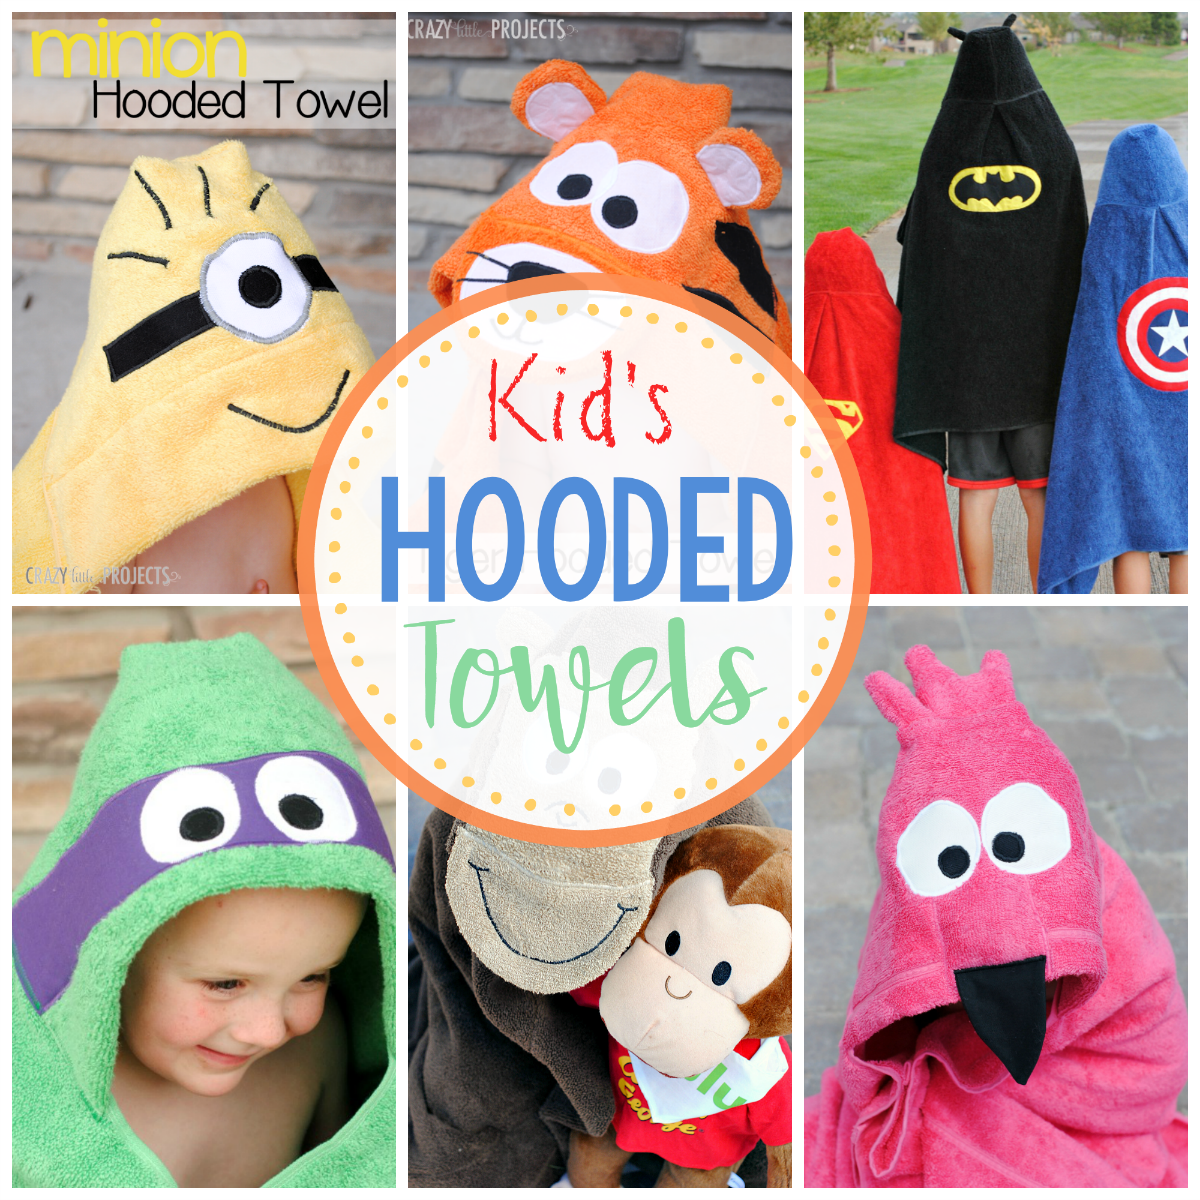 Children's Hooded Bath Towels-Patterns to sew all these cute kids towels (and more). Animals and favorite kids characters in a great hooded towel pattern. Makes a great gift! #bathtowels #hoodedtowels #sewing #sewingpatterns #sew #patterns #kids #forkids